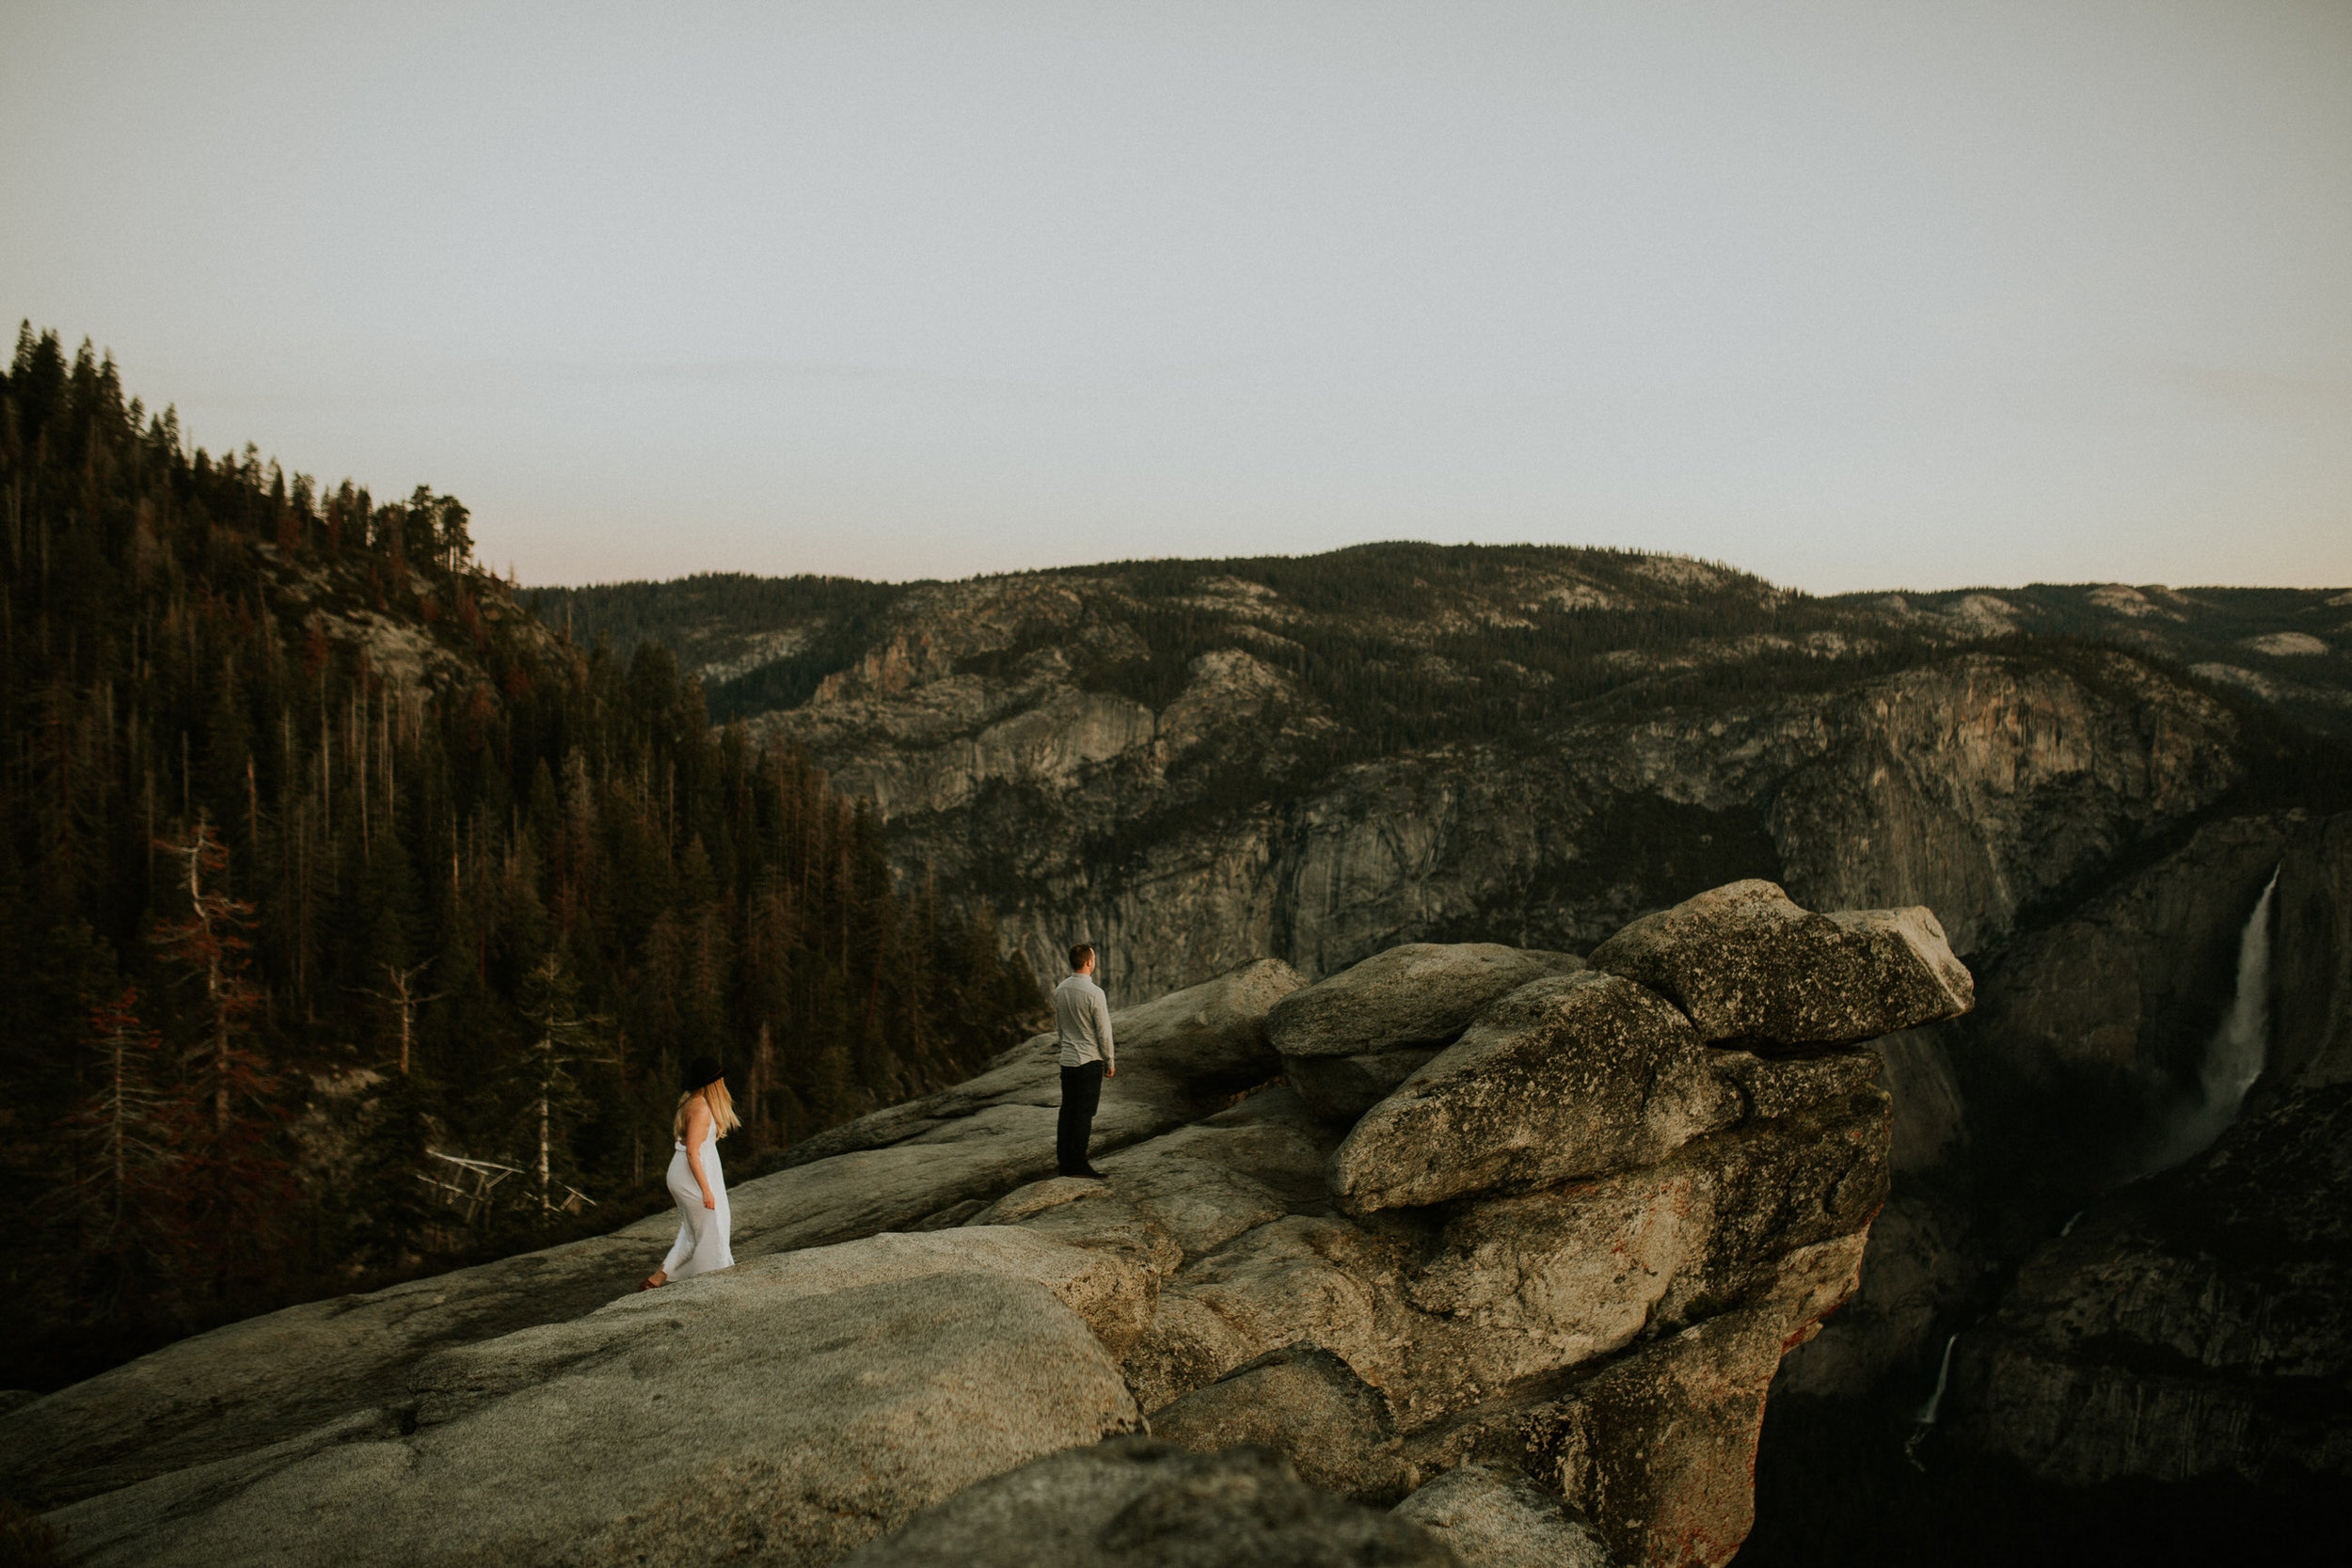 Yosemite Anniversary Session -yosemite Couple's Session - Yosemite Wedding Photographer - Yosemite Couple's Photographer - California Intimate Wedding Photographer - Seattle Elopement Photographer - Olympic National Park Wedding Photographer - Ruby Beach Wedding Photographer - Las Vegas Elopement Photographer - Washington Intimate Wedding Photographer - PNW Elopement Photographer - Arizona Wedding Photographer - Ireland Wedding Photographer - Scotland Wedding Photographer - kauai Wedding Phographer